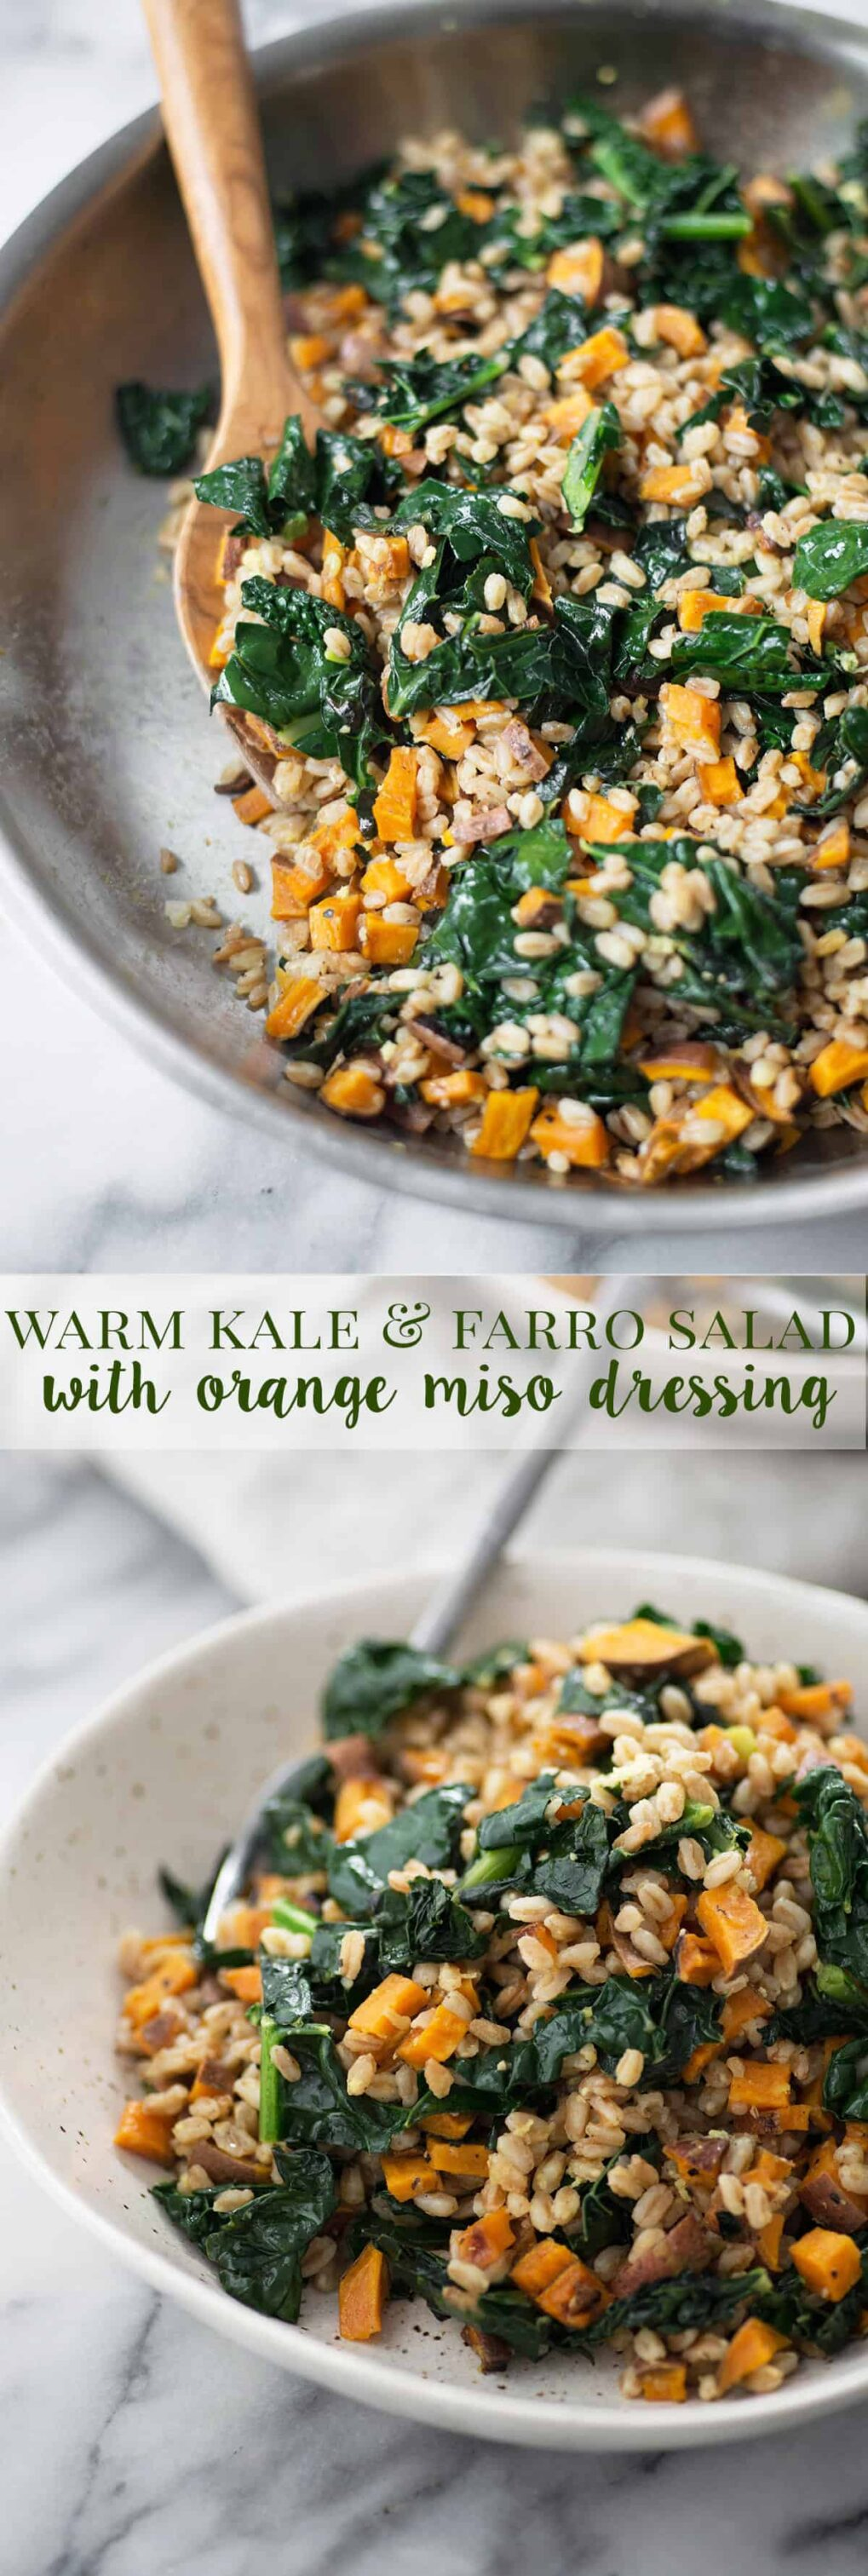 Warm Farro and Kale Salad with Orange-Miso Dressing! This vegan meal is super nourishing and healthy. A must make this winter!   www.delishknowledge.com